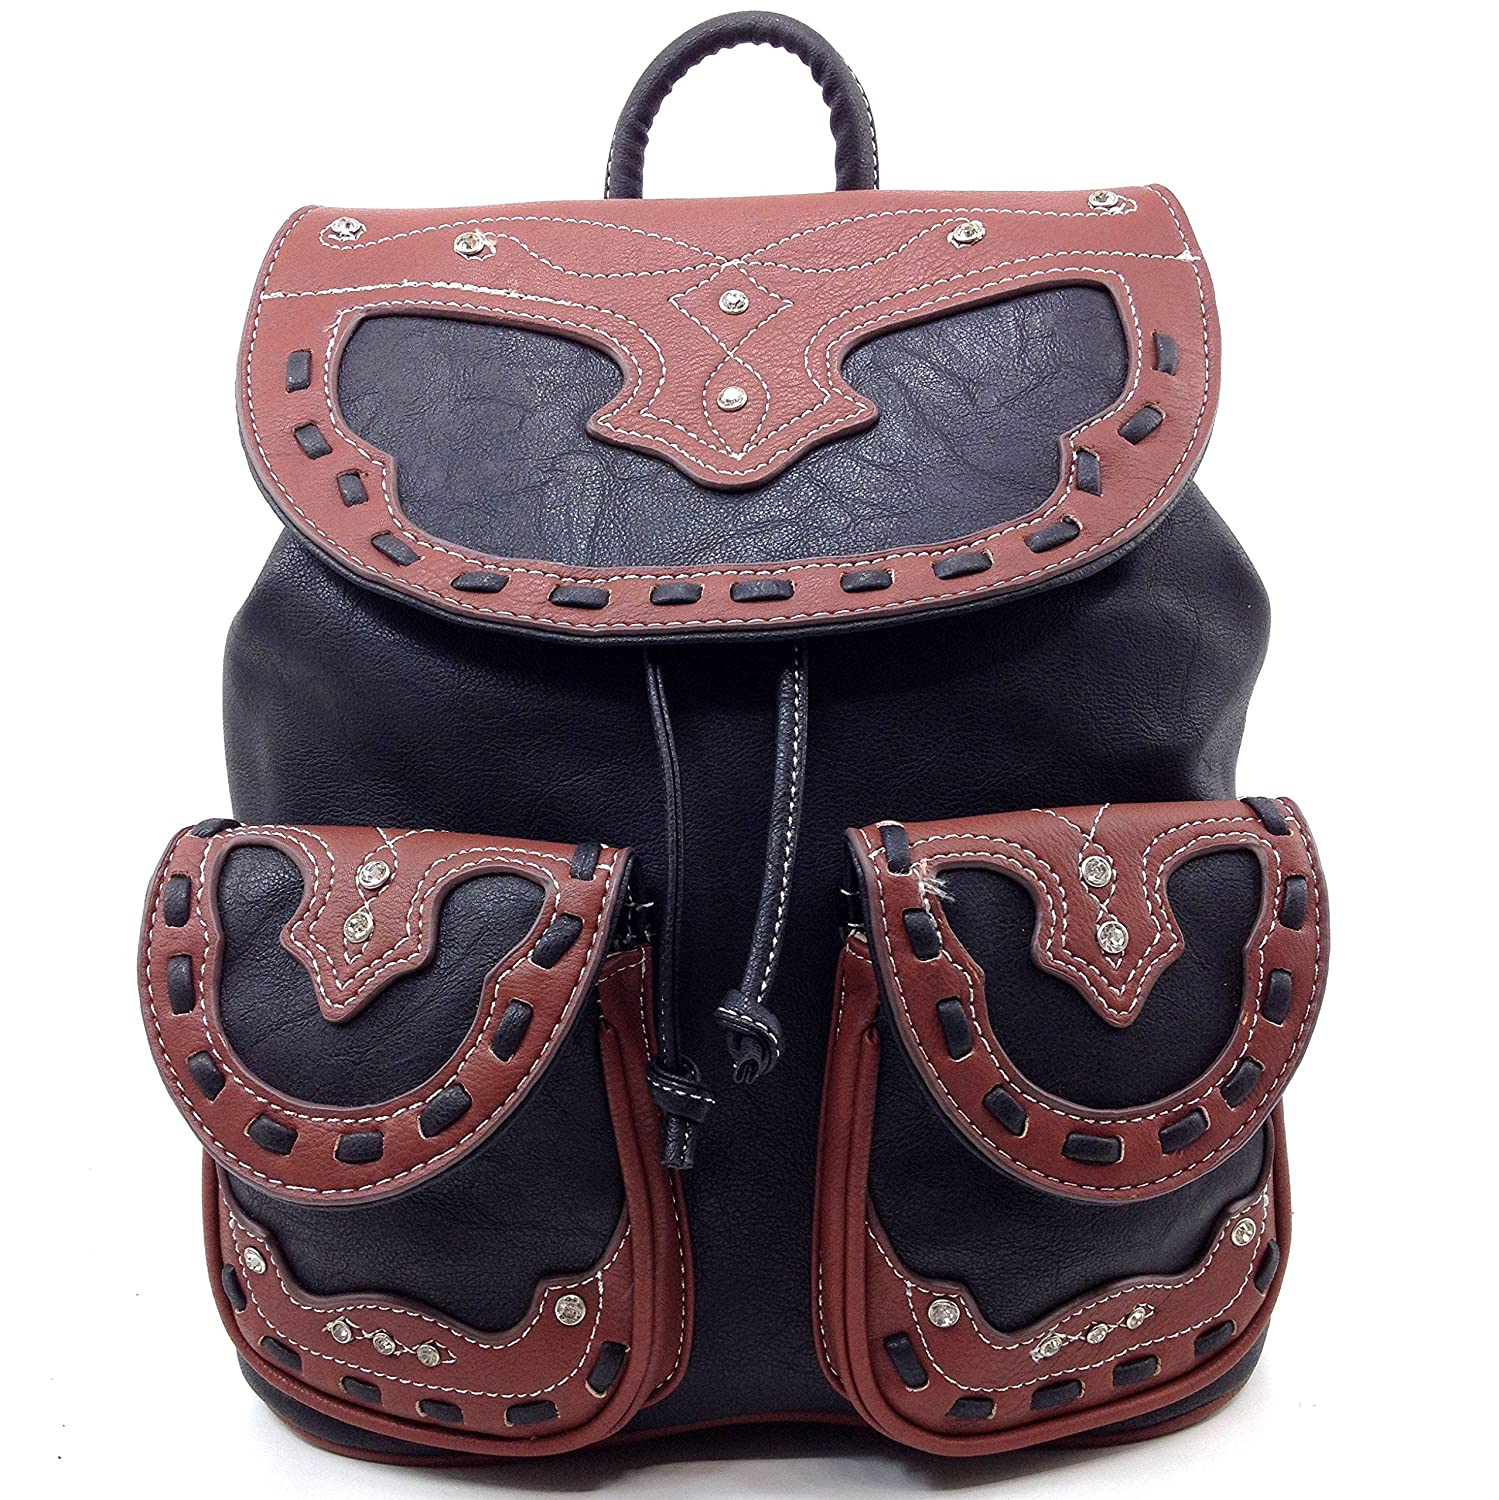 latest selection deft design low price Justin West Trendy Western Rhinestone Leather Conceal Carry Top Handle  Backpack Purse